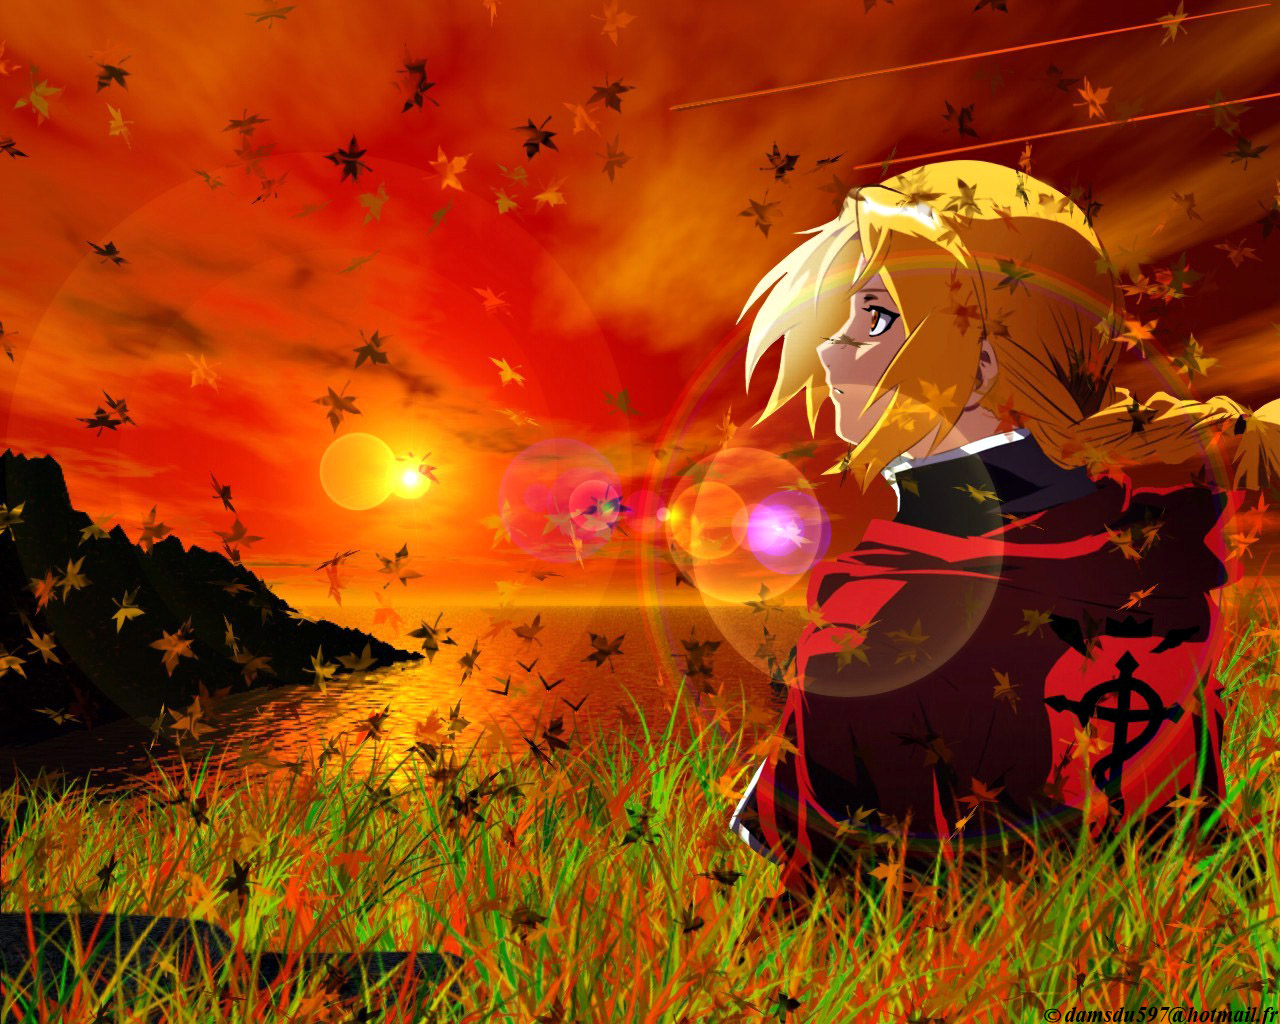 fullmetal alchemist Wallpaper Background 6522 1280x1024